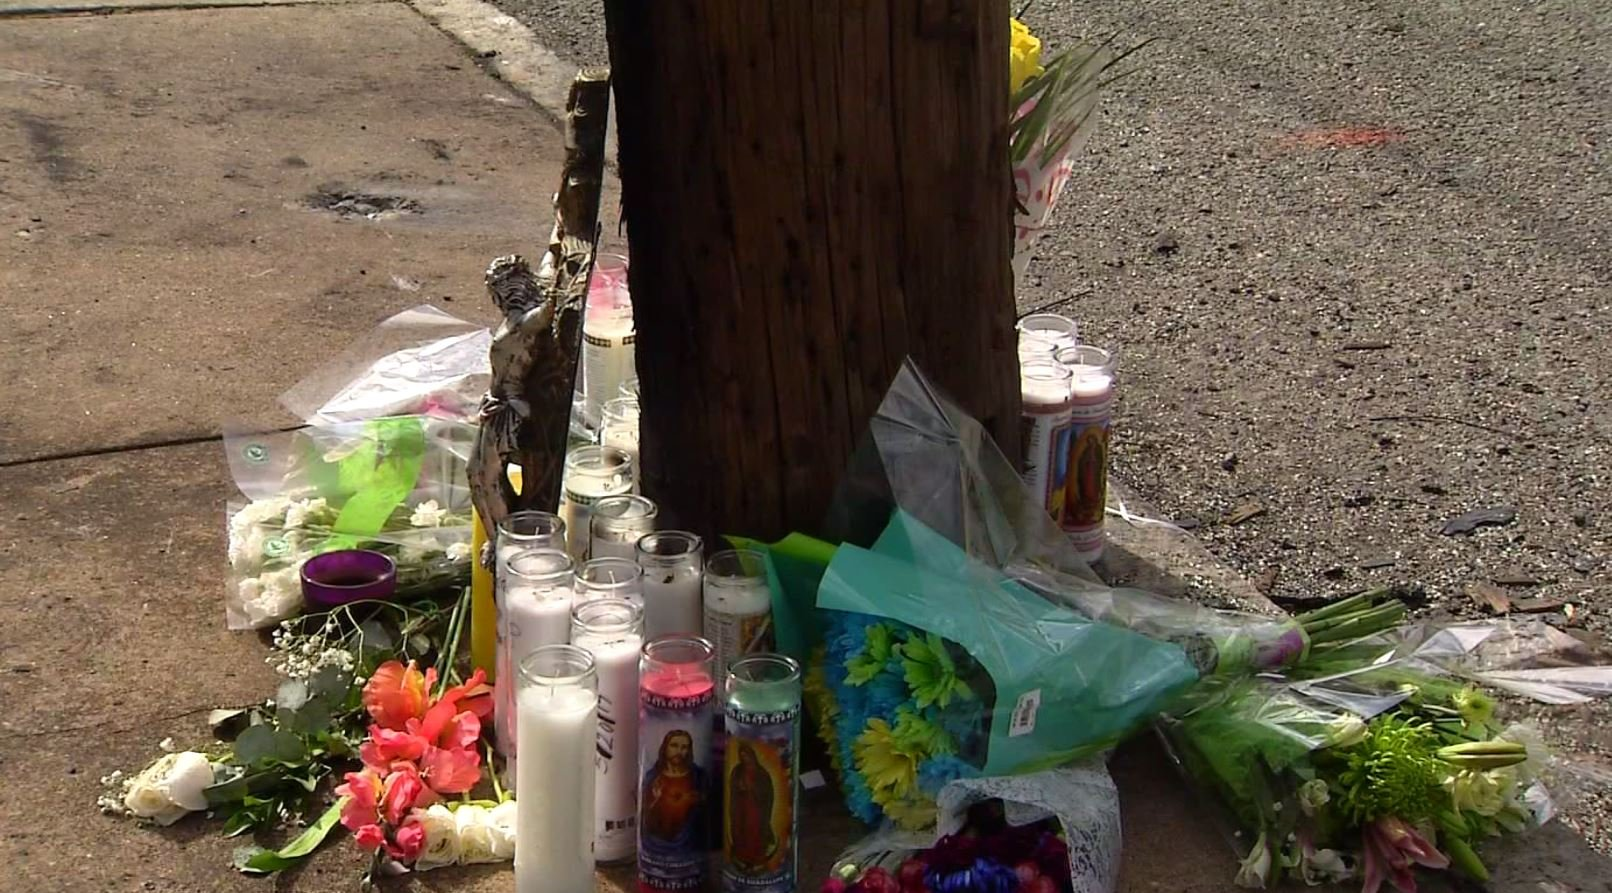 A makeshift memorial was established by those grieving the loss of three young lives in an overnight car crash. (WFSB).